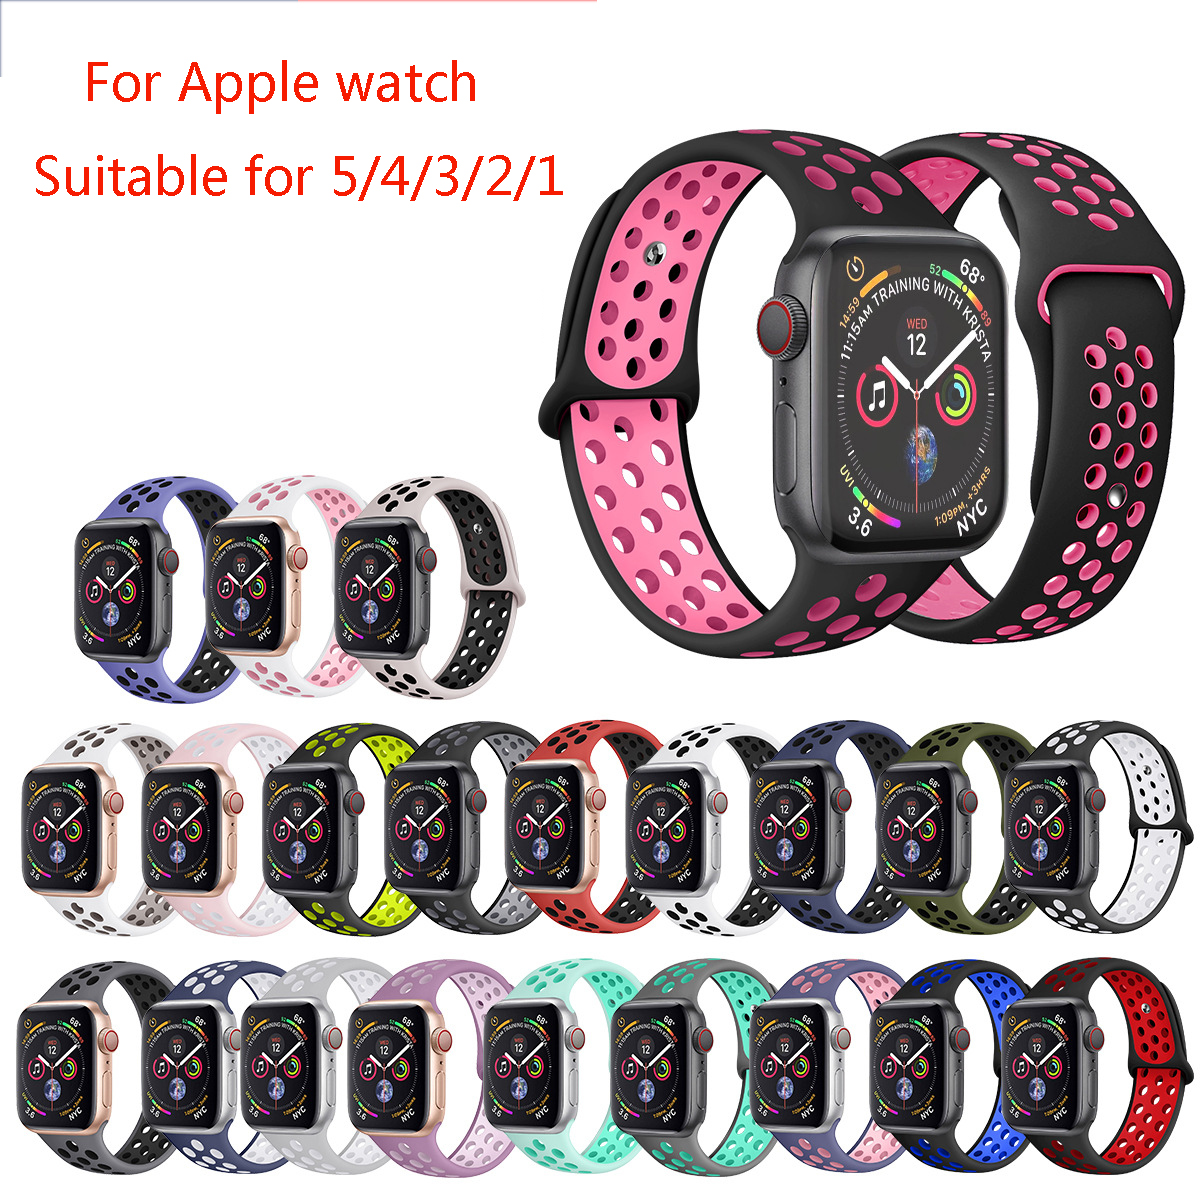 Watchband For Nike Sport Apple Watch Series 4/5/3/2/1 42mm 38mm Rubber Wrist Bracelet Adapter Iwatch 40mm 44mm Apple Watch Band